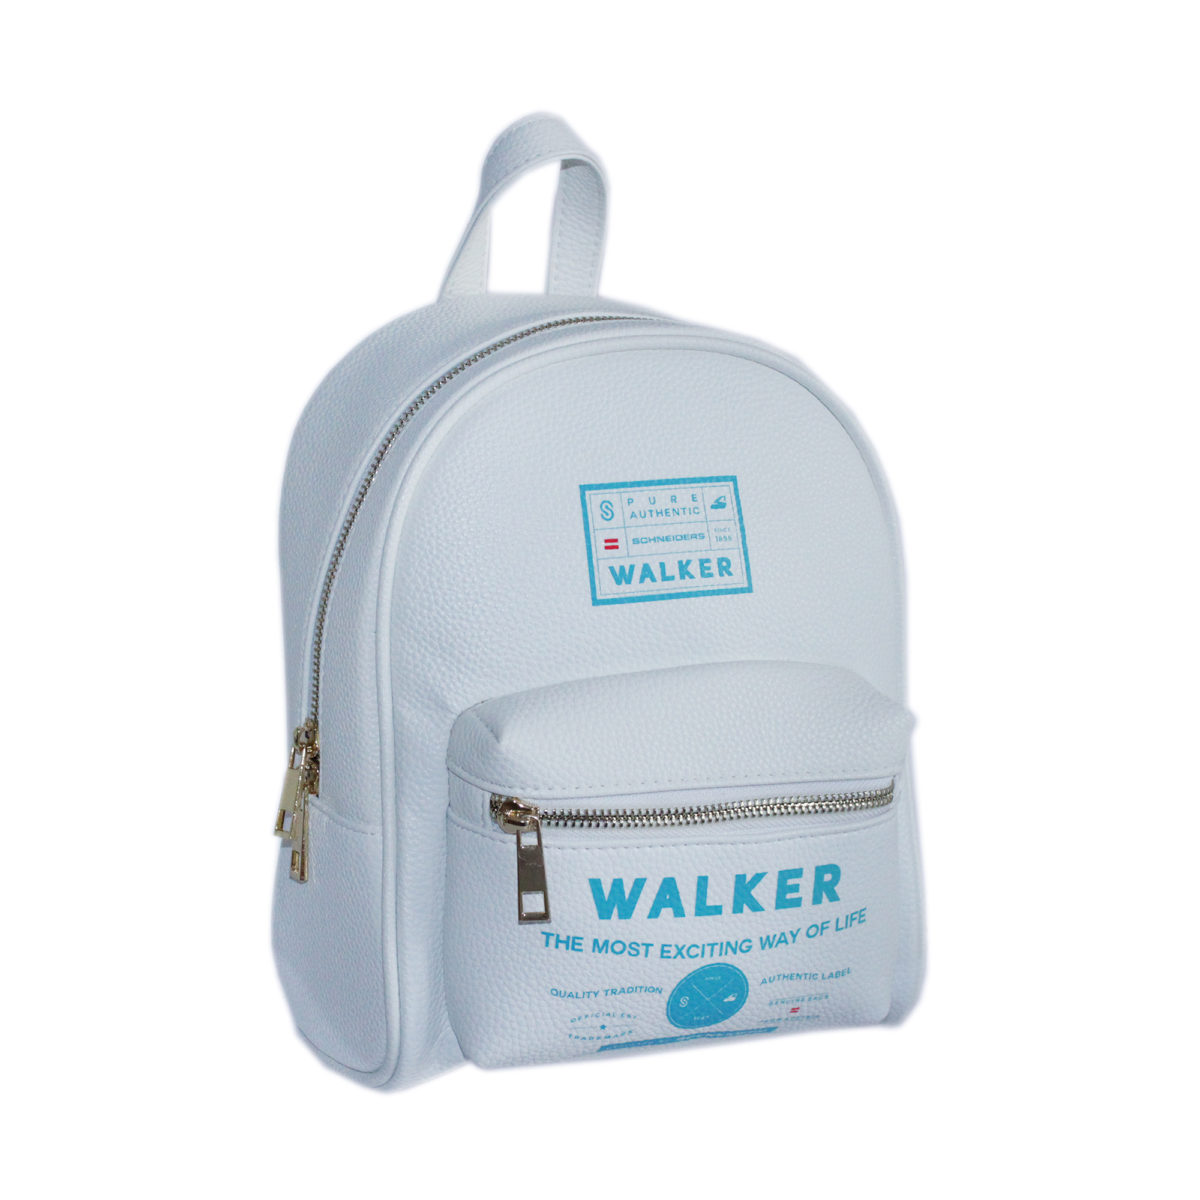 https://walker-bags.com/wp-content/uploads/2020/06/2000-x-2000-2.jpg